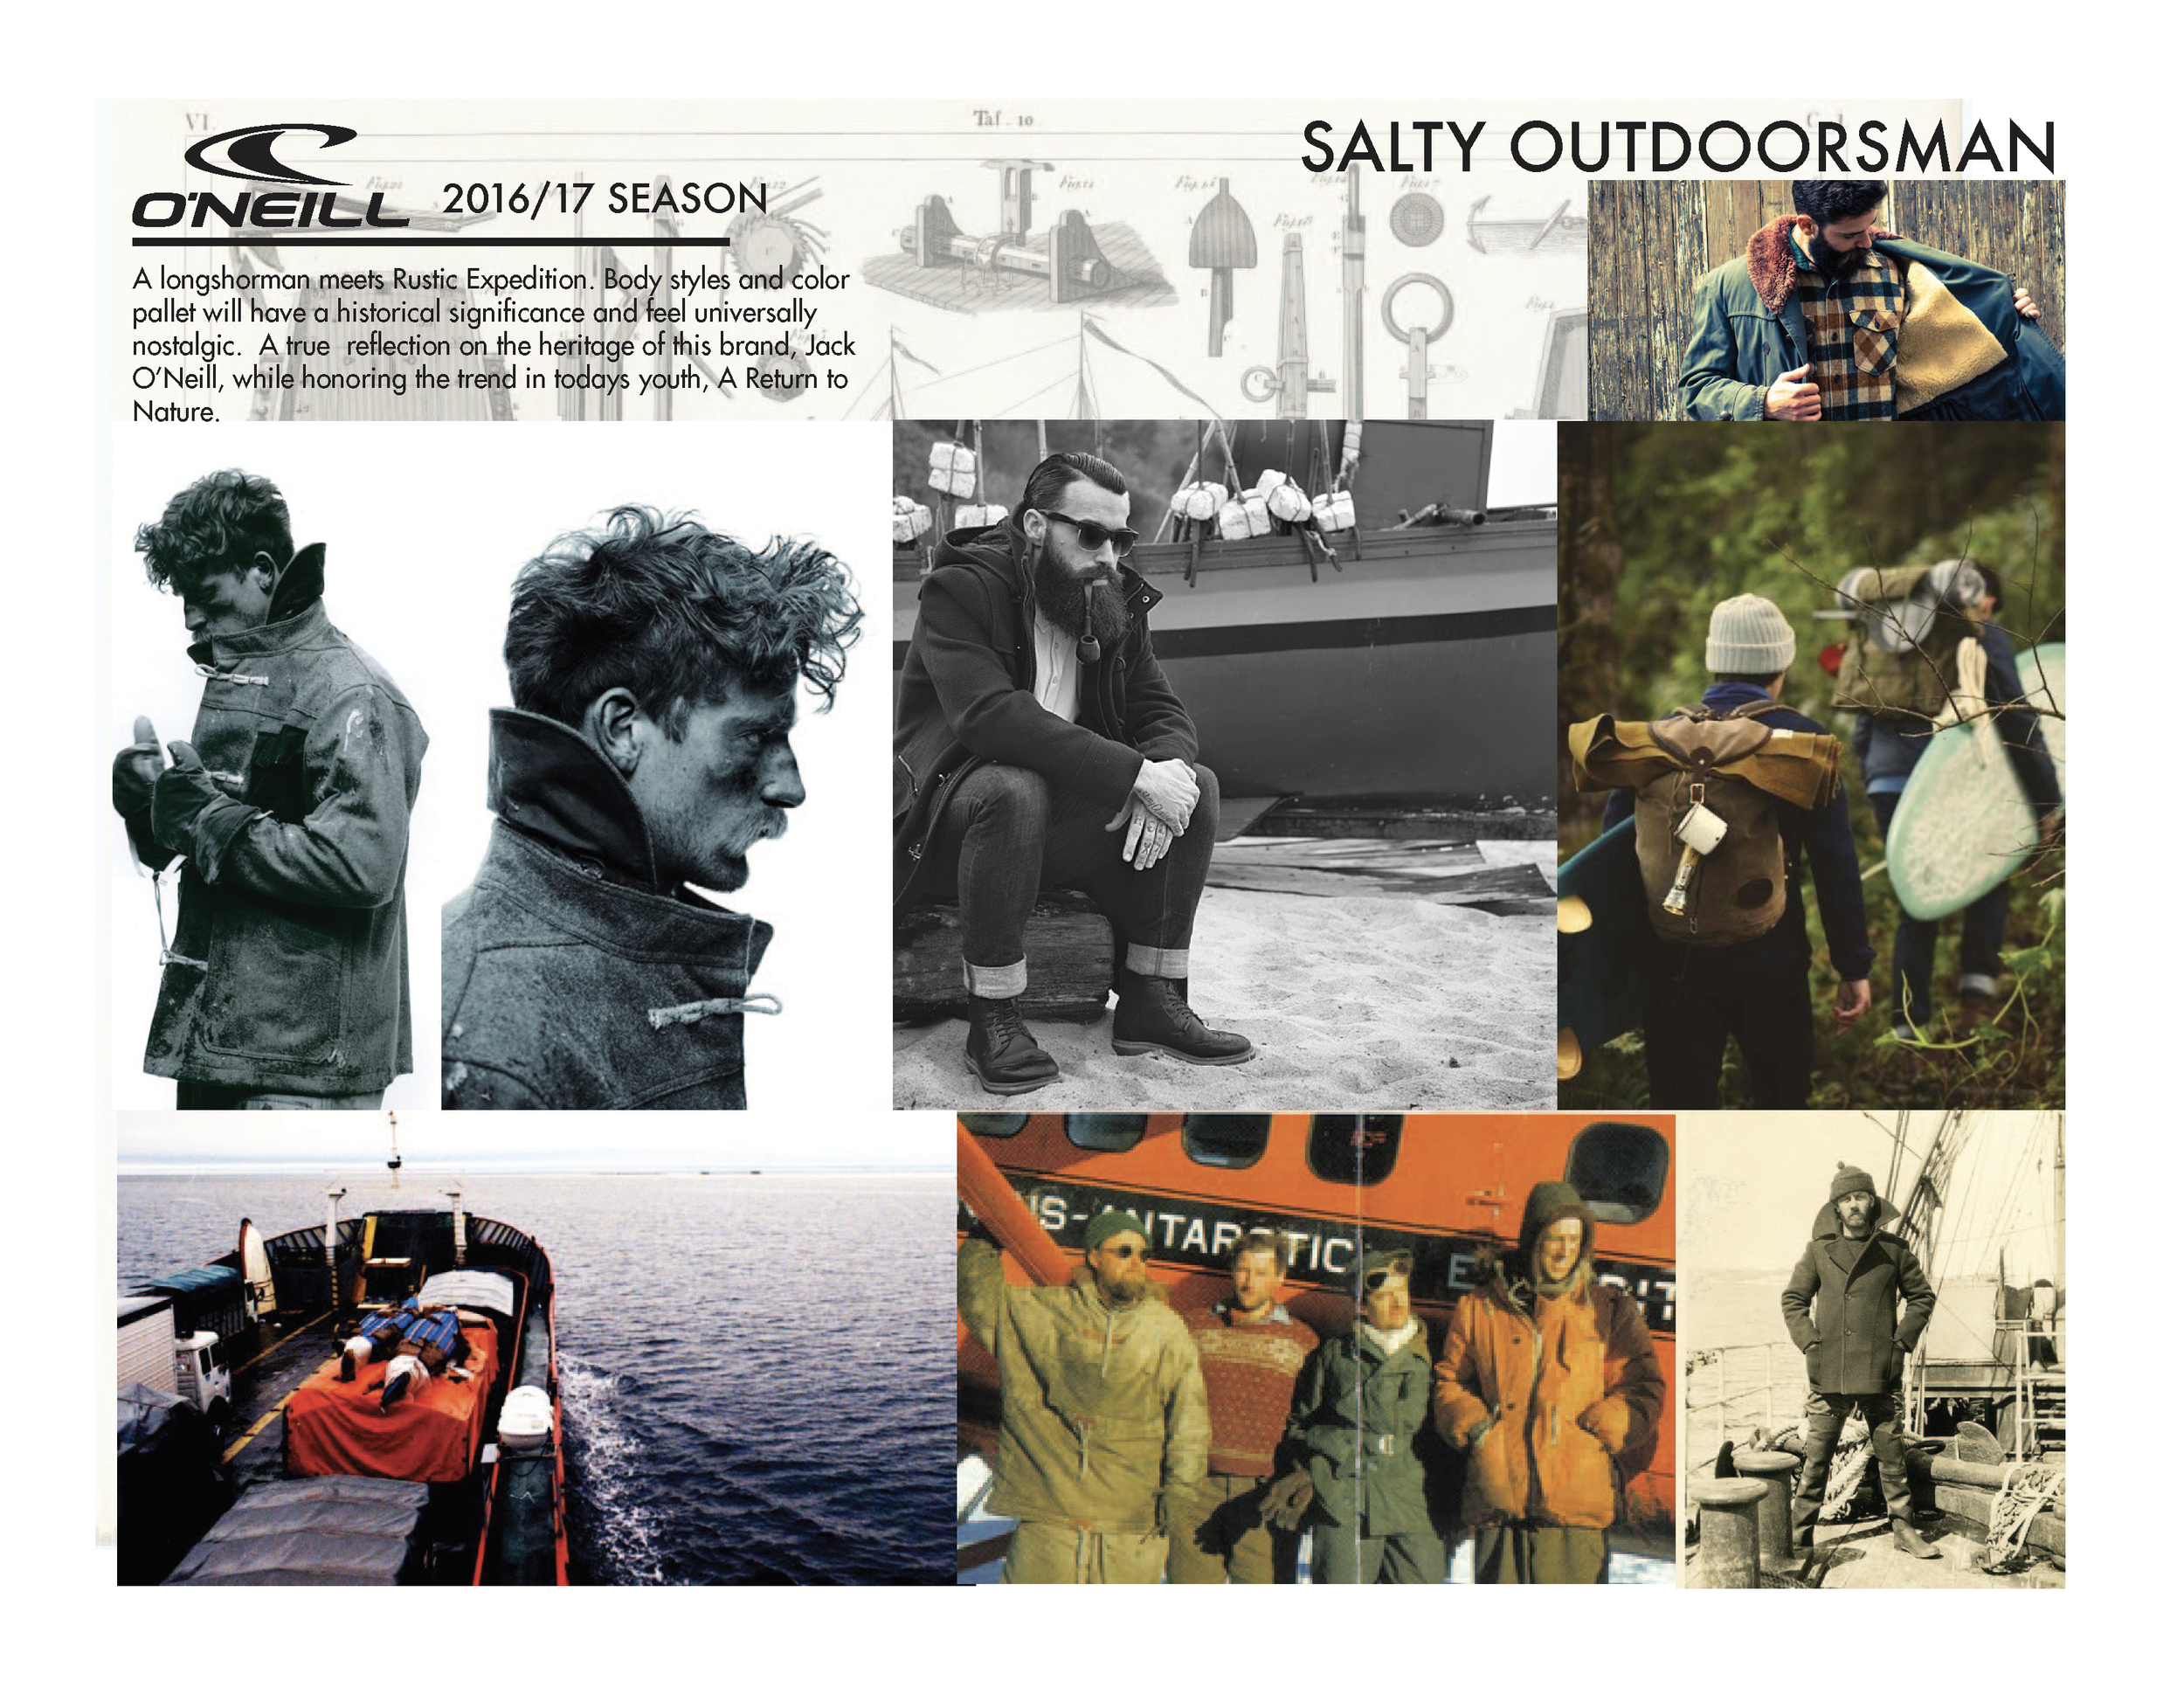 SALTY-OUTDOORSMAN-MENS_Page_01.png